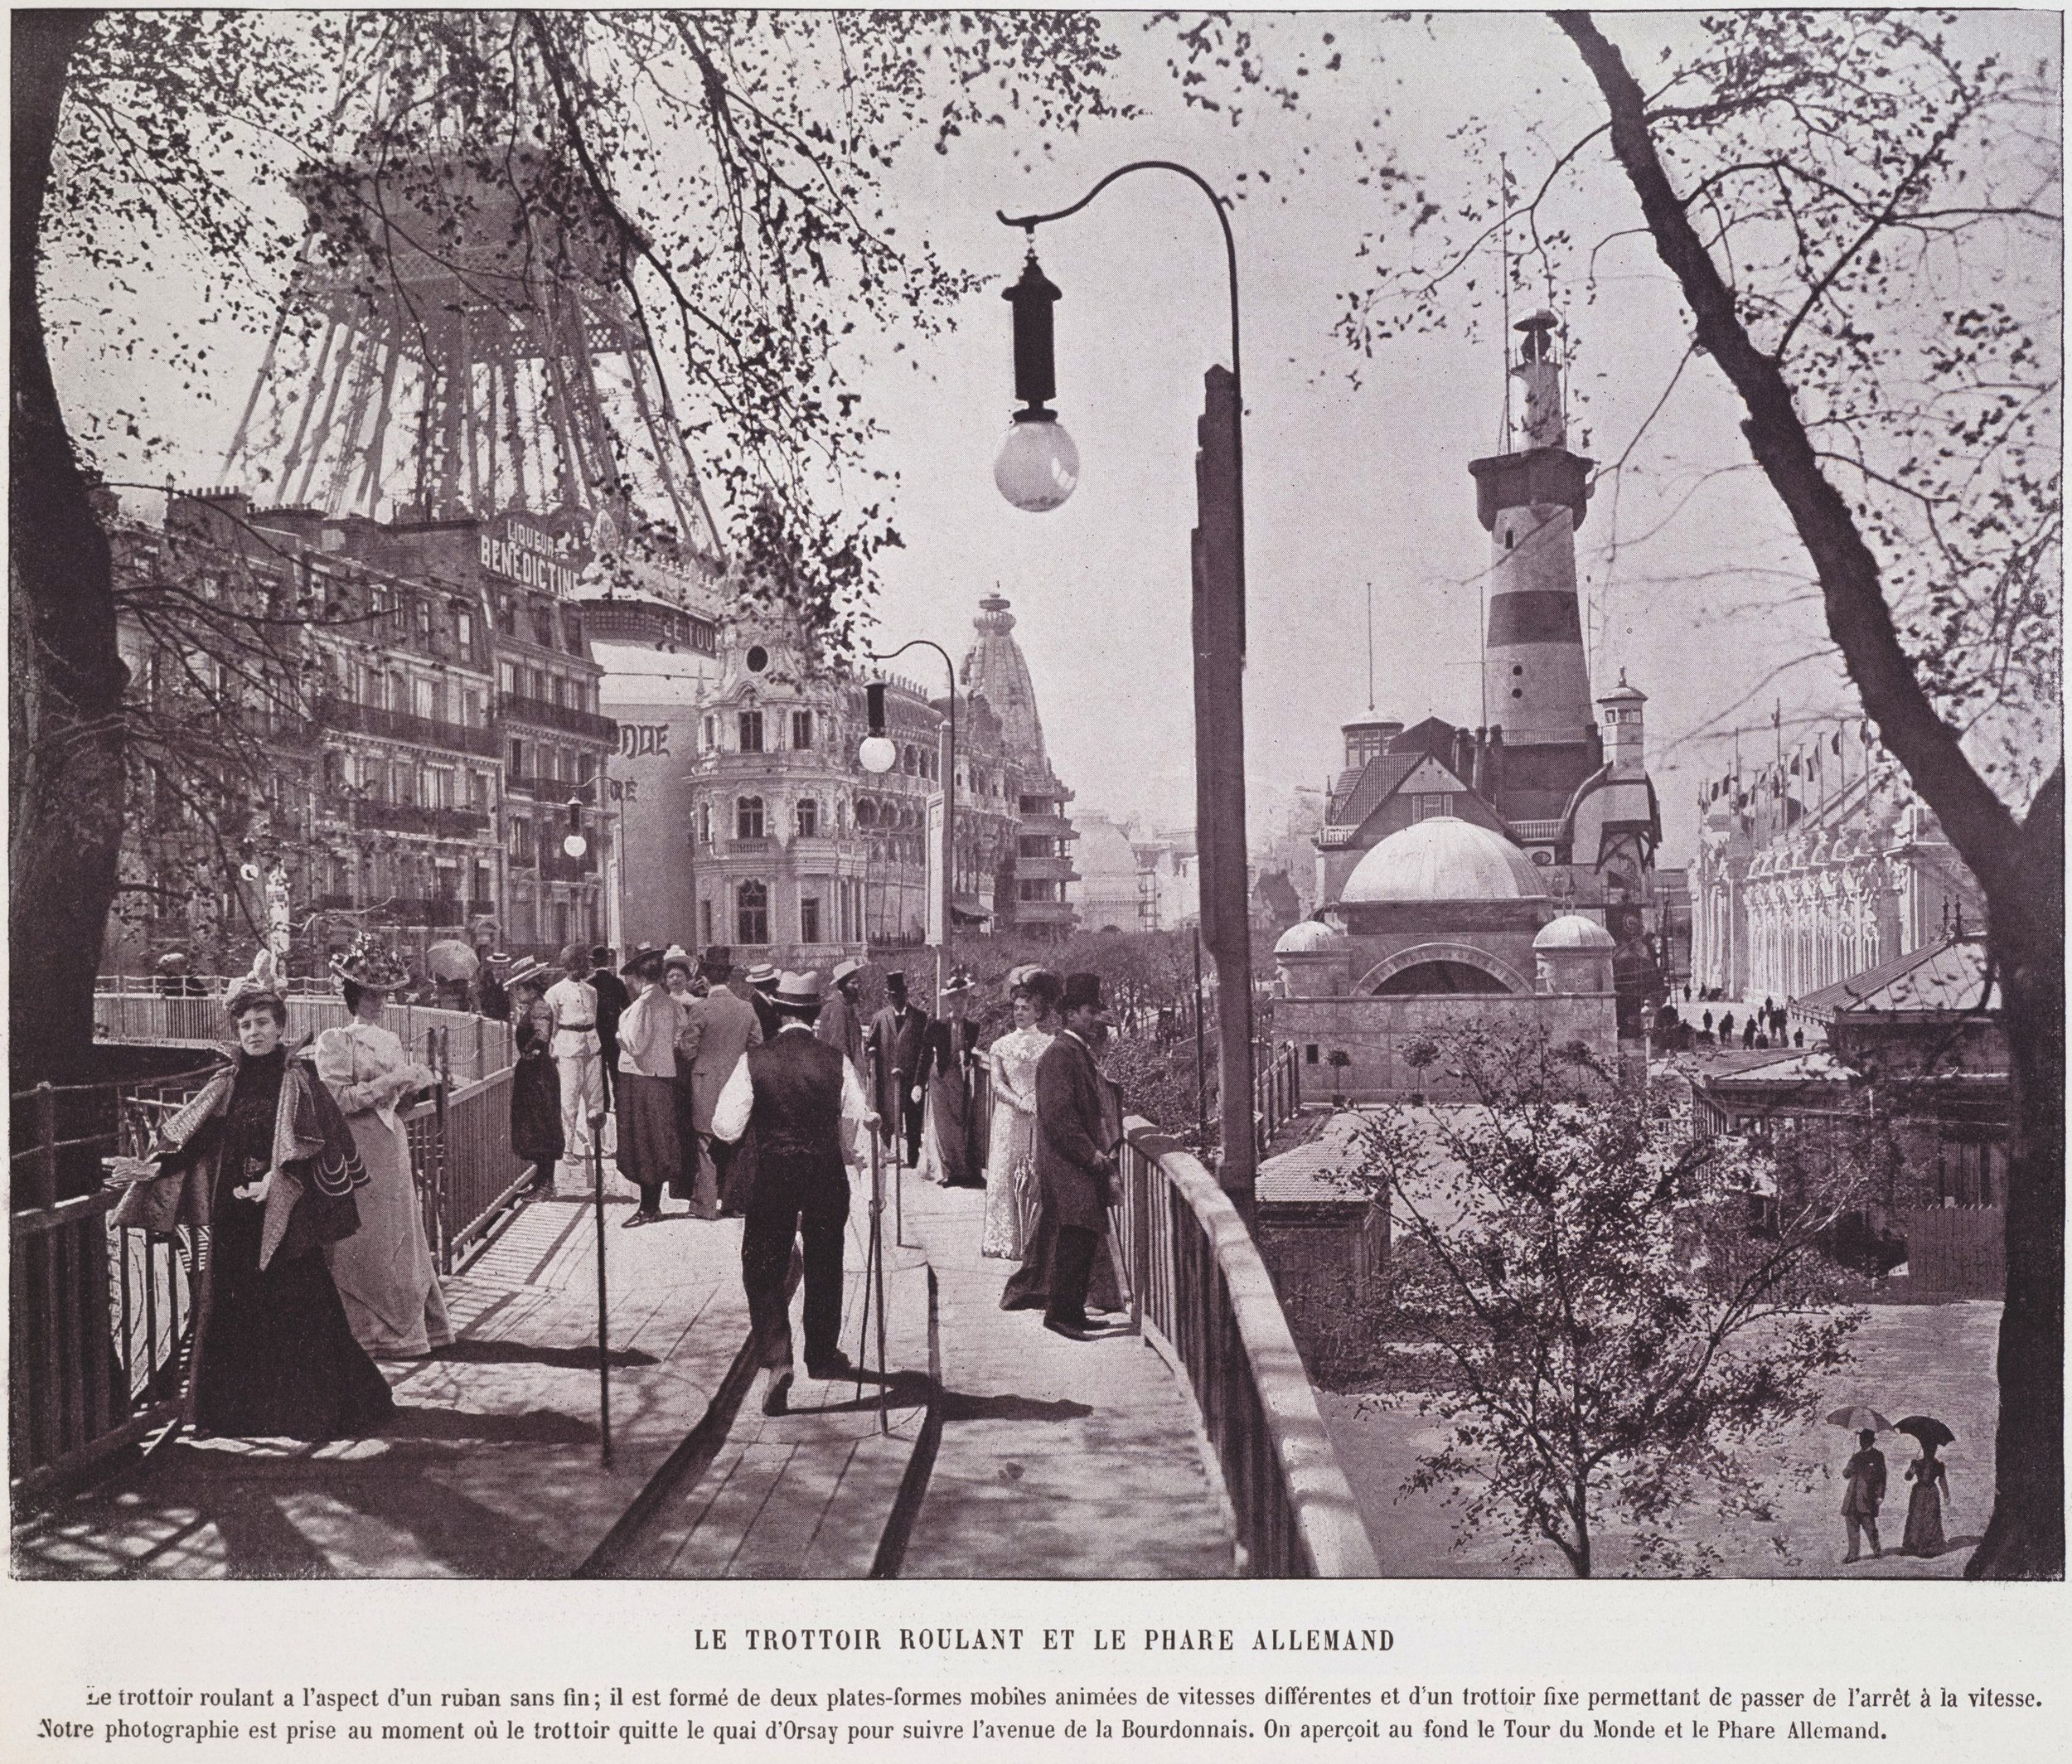 "Another image of the moving walkway at the 1900 Paris world fair. The right platform would have been immobile, while the two left platforms were moving at different speeds. In the background of the image, one can see the German Merchant Navy building and the ""Tour du monde"" at the feet of the Eiffel Tower."